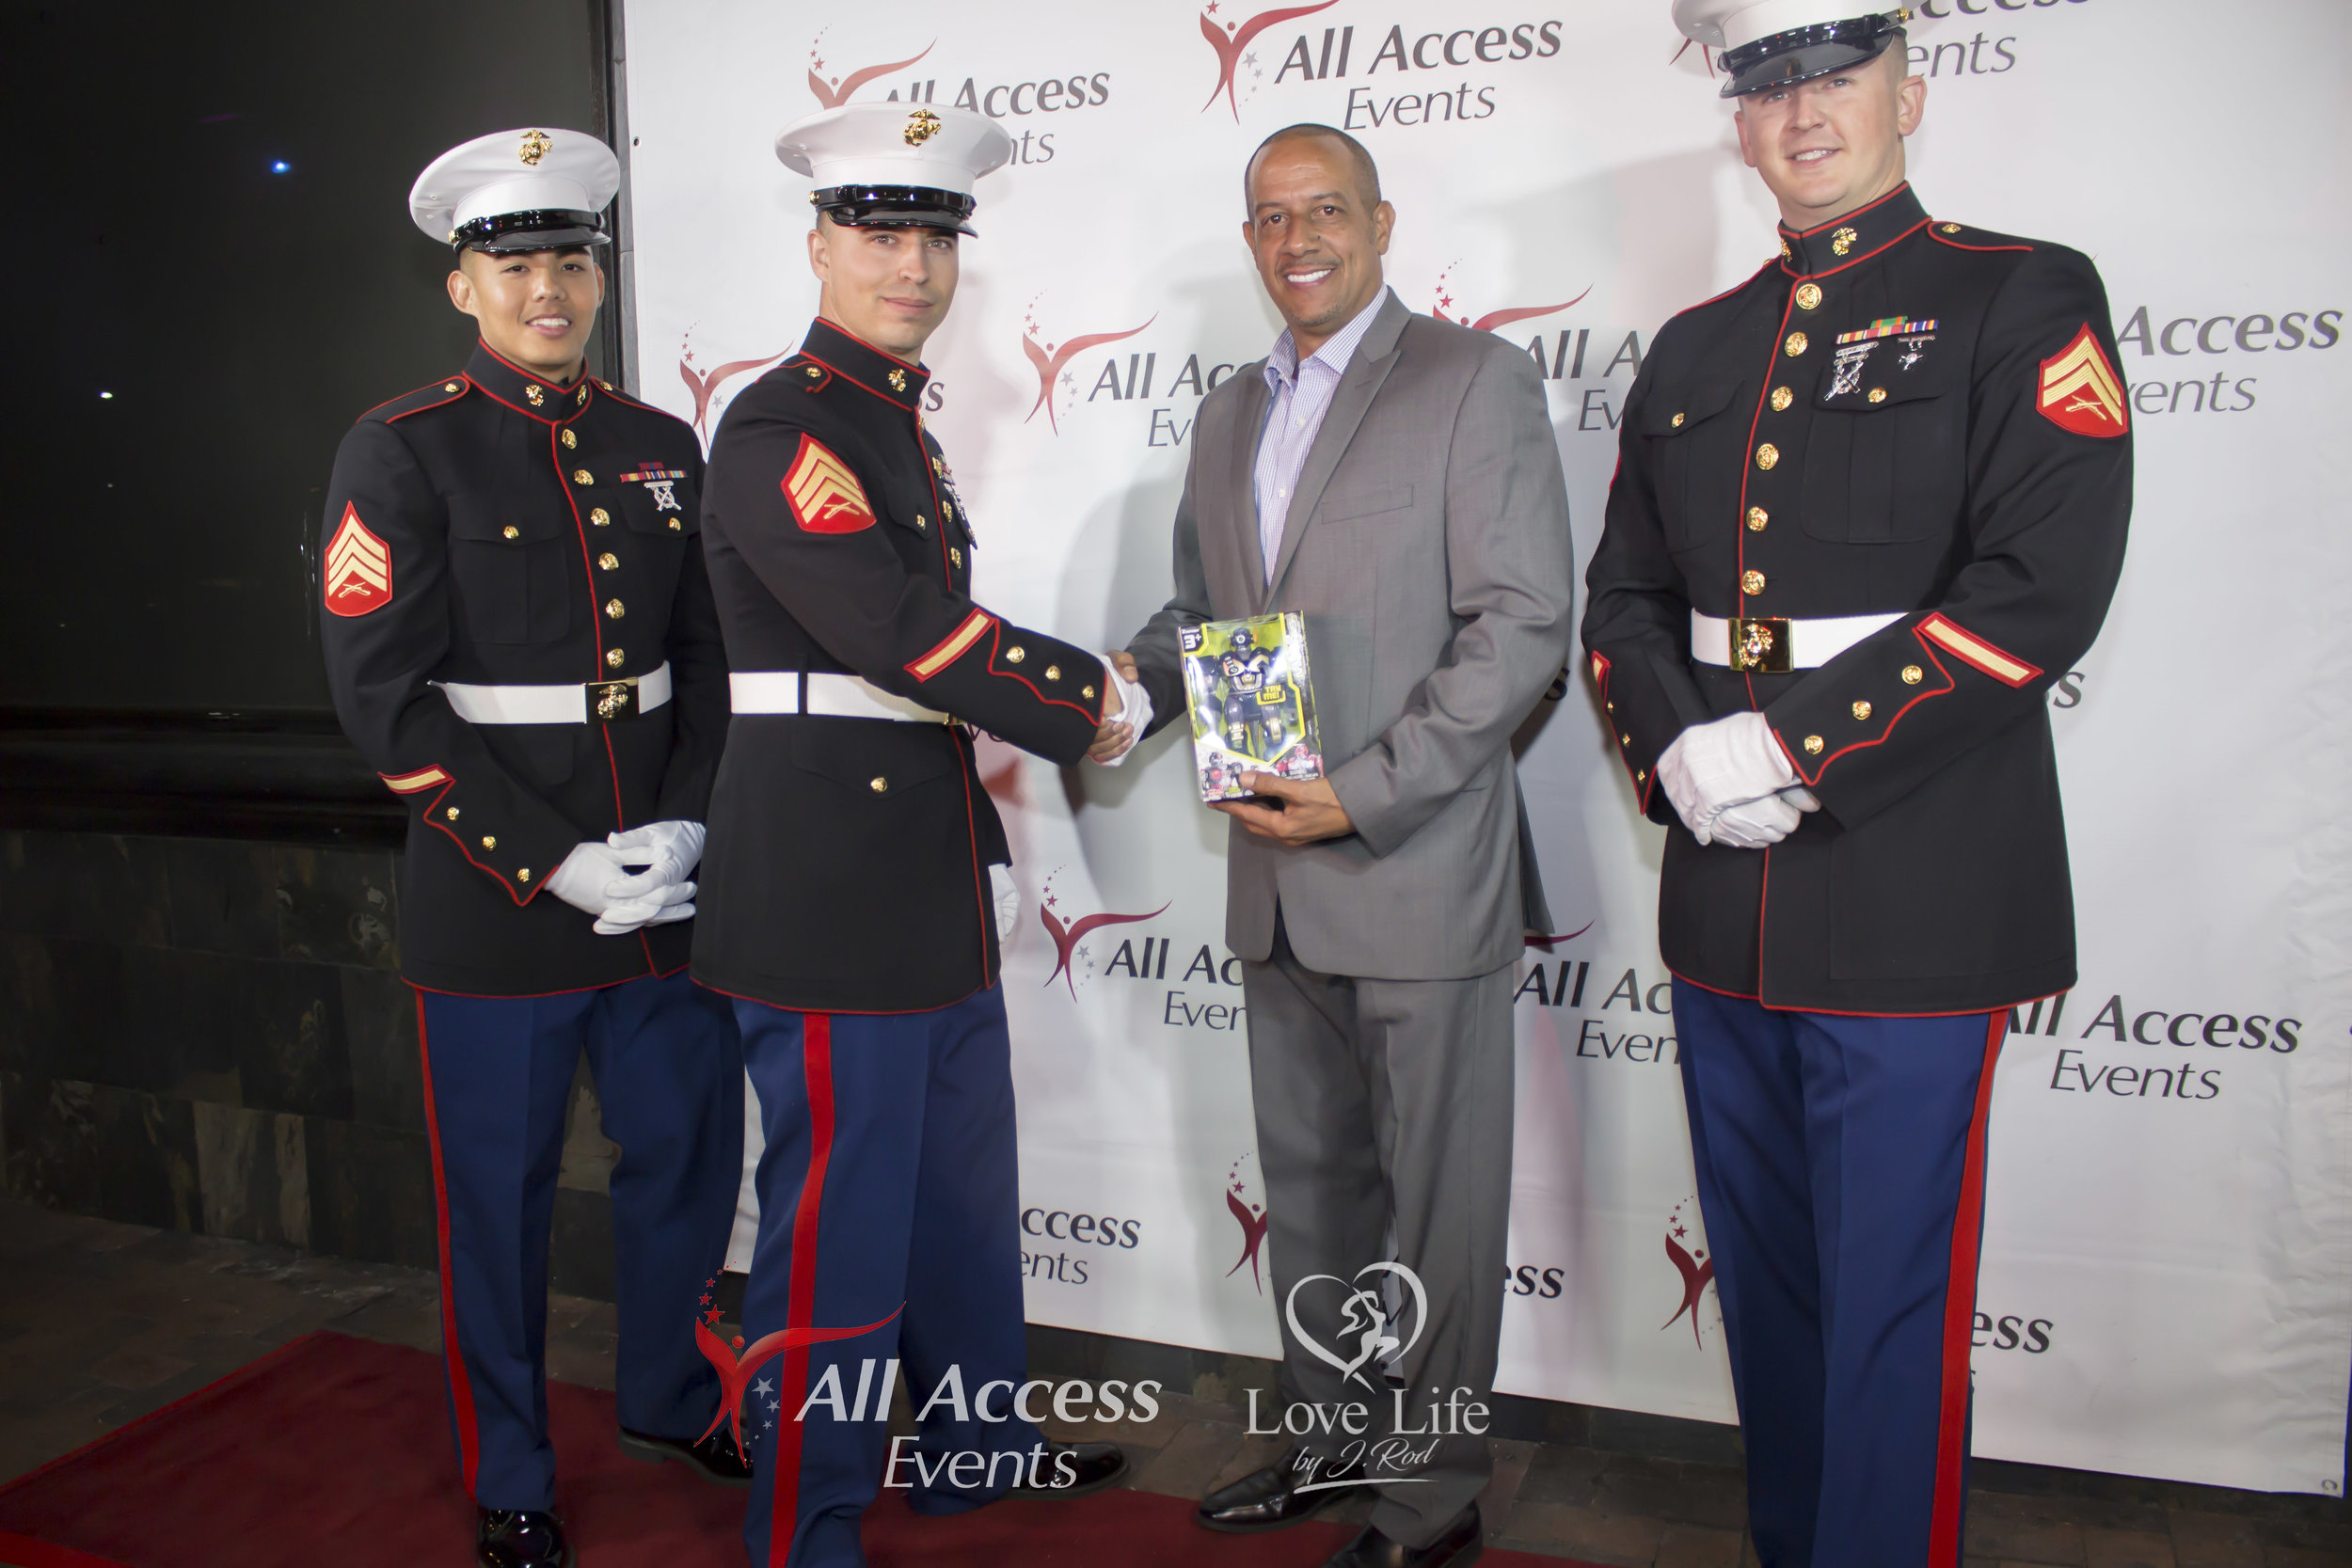 All Access Events Toy Drive - 12-13-17_208.jpg